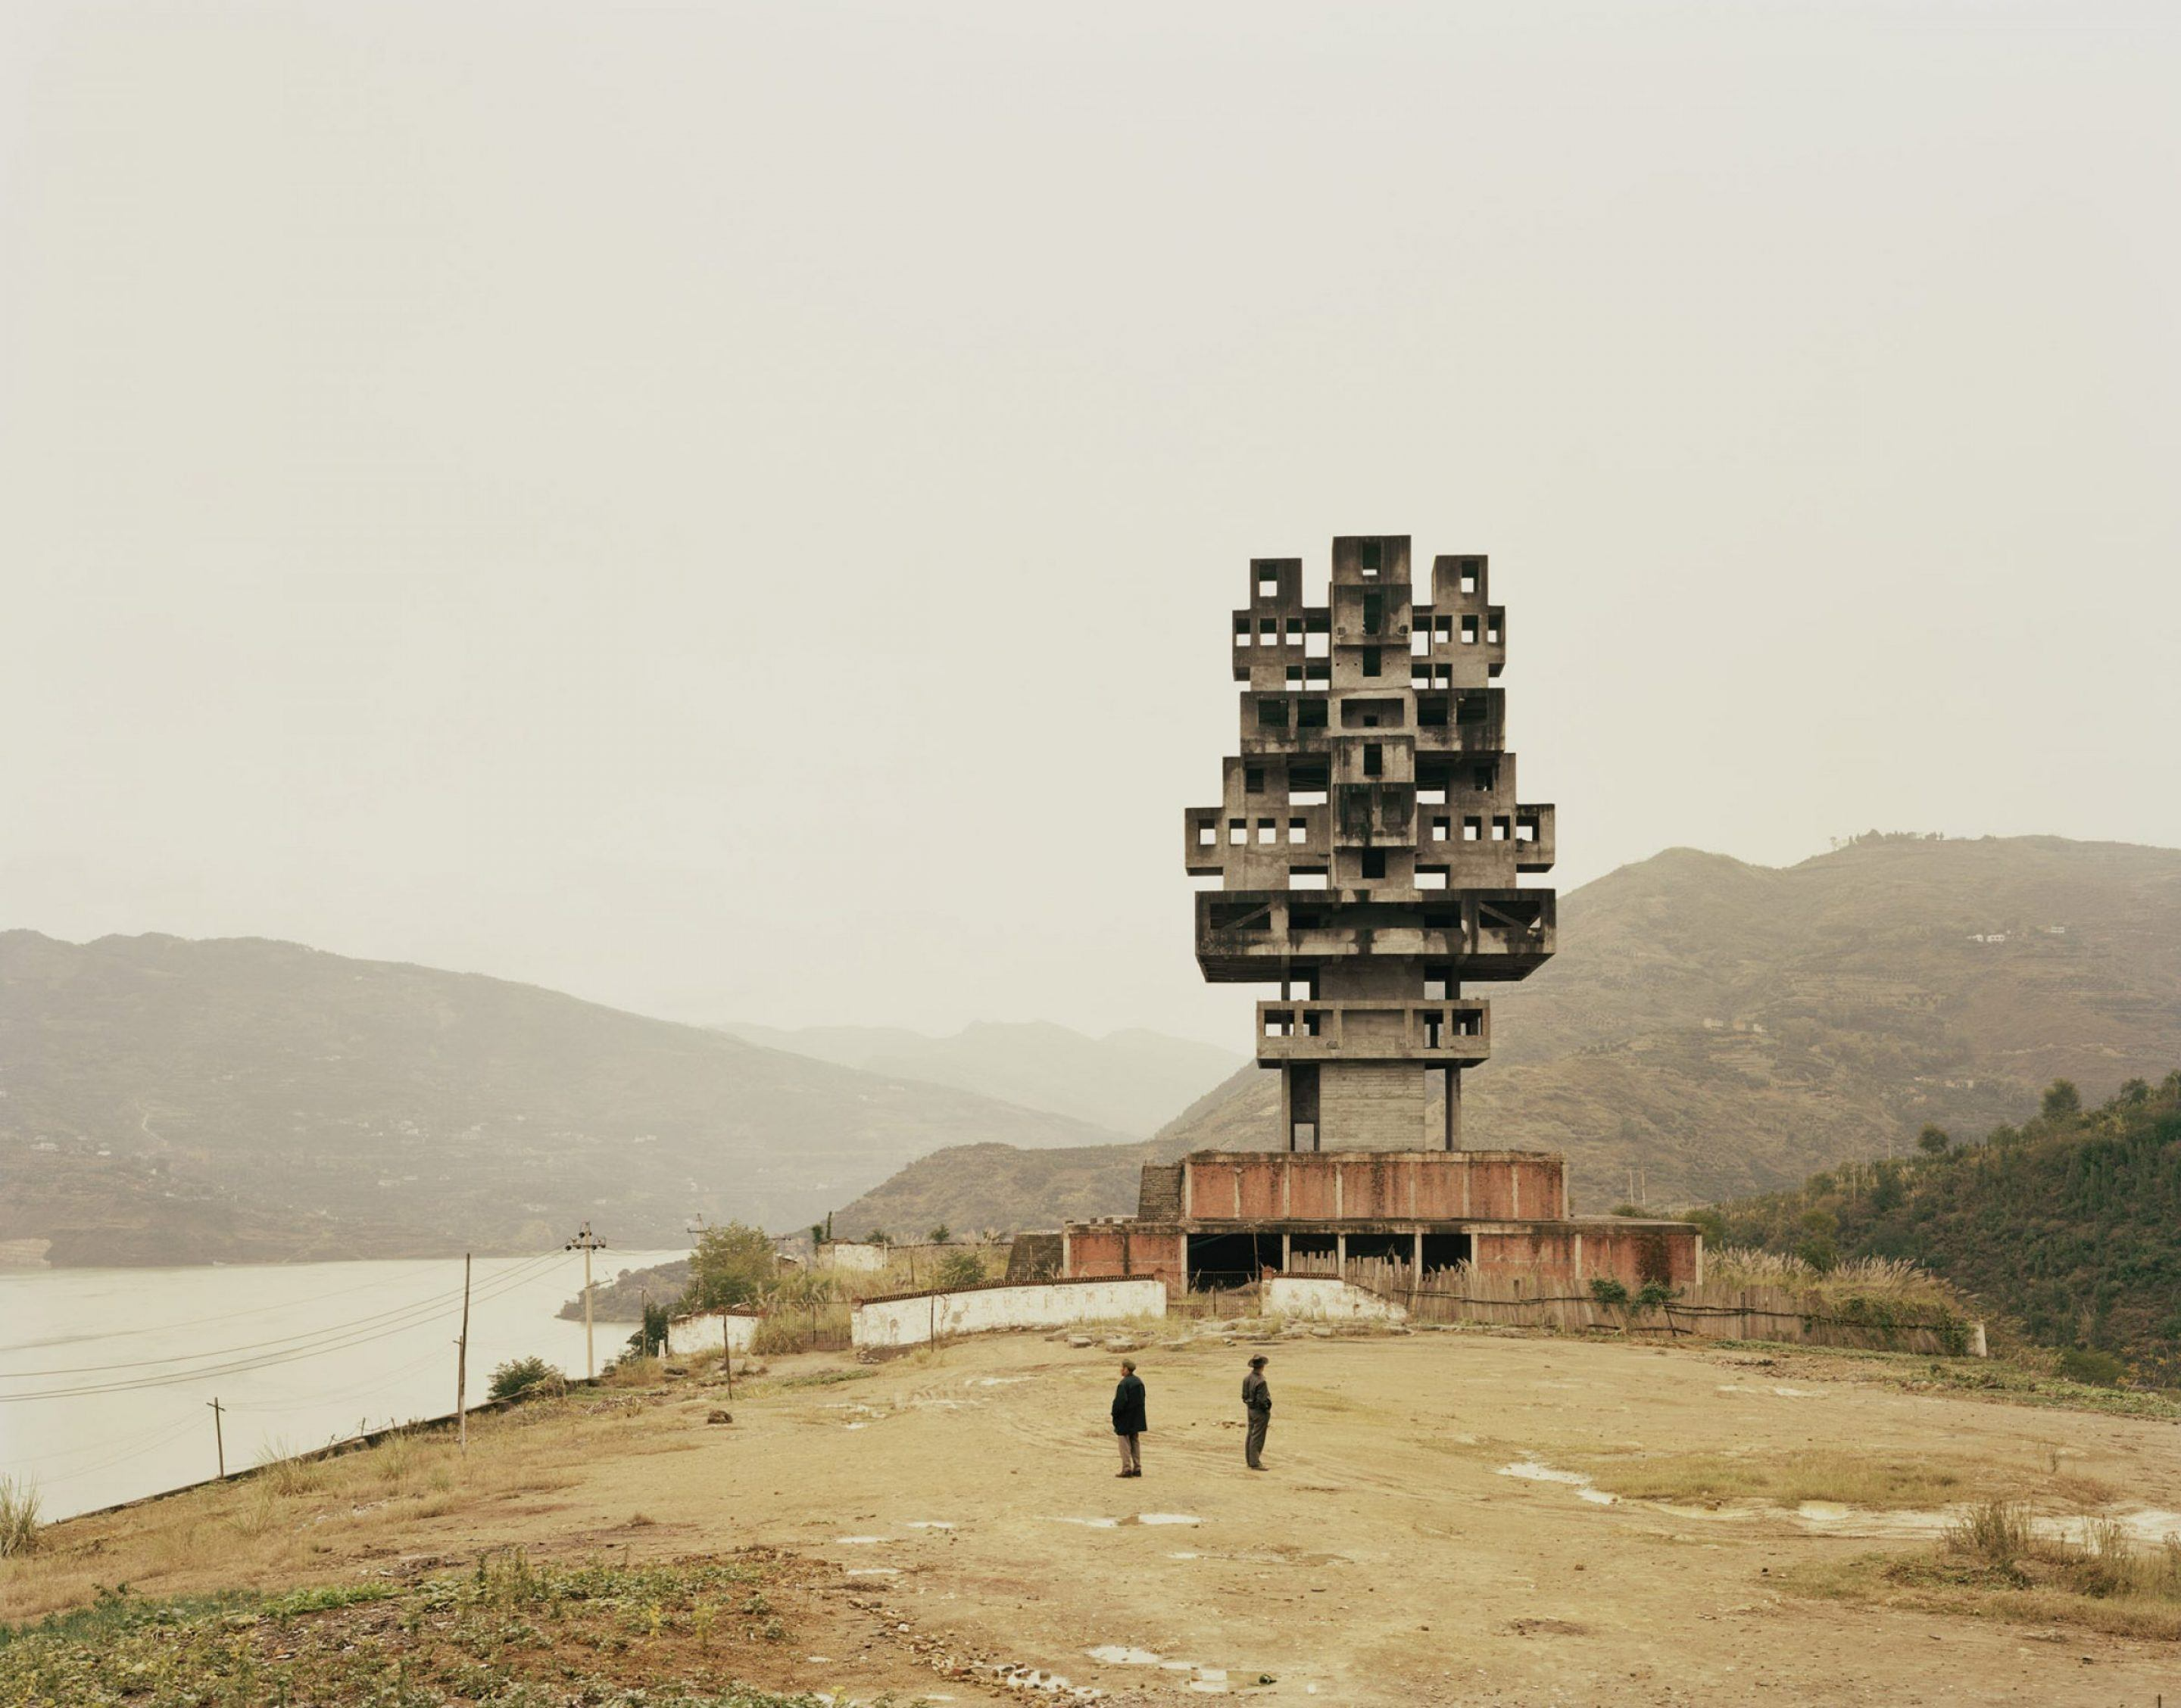 IGNANT-Photography-Nadav-Kander-Yangtze-The-Long-River-009